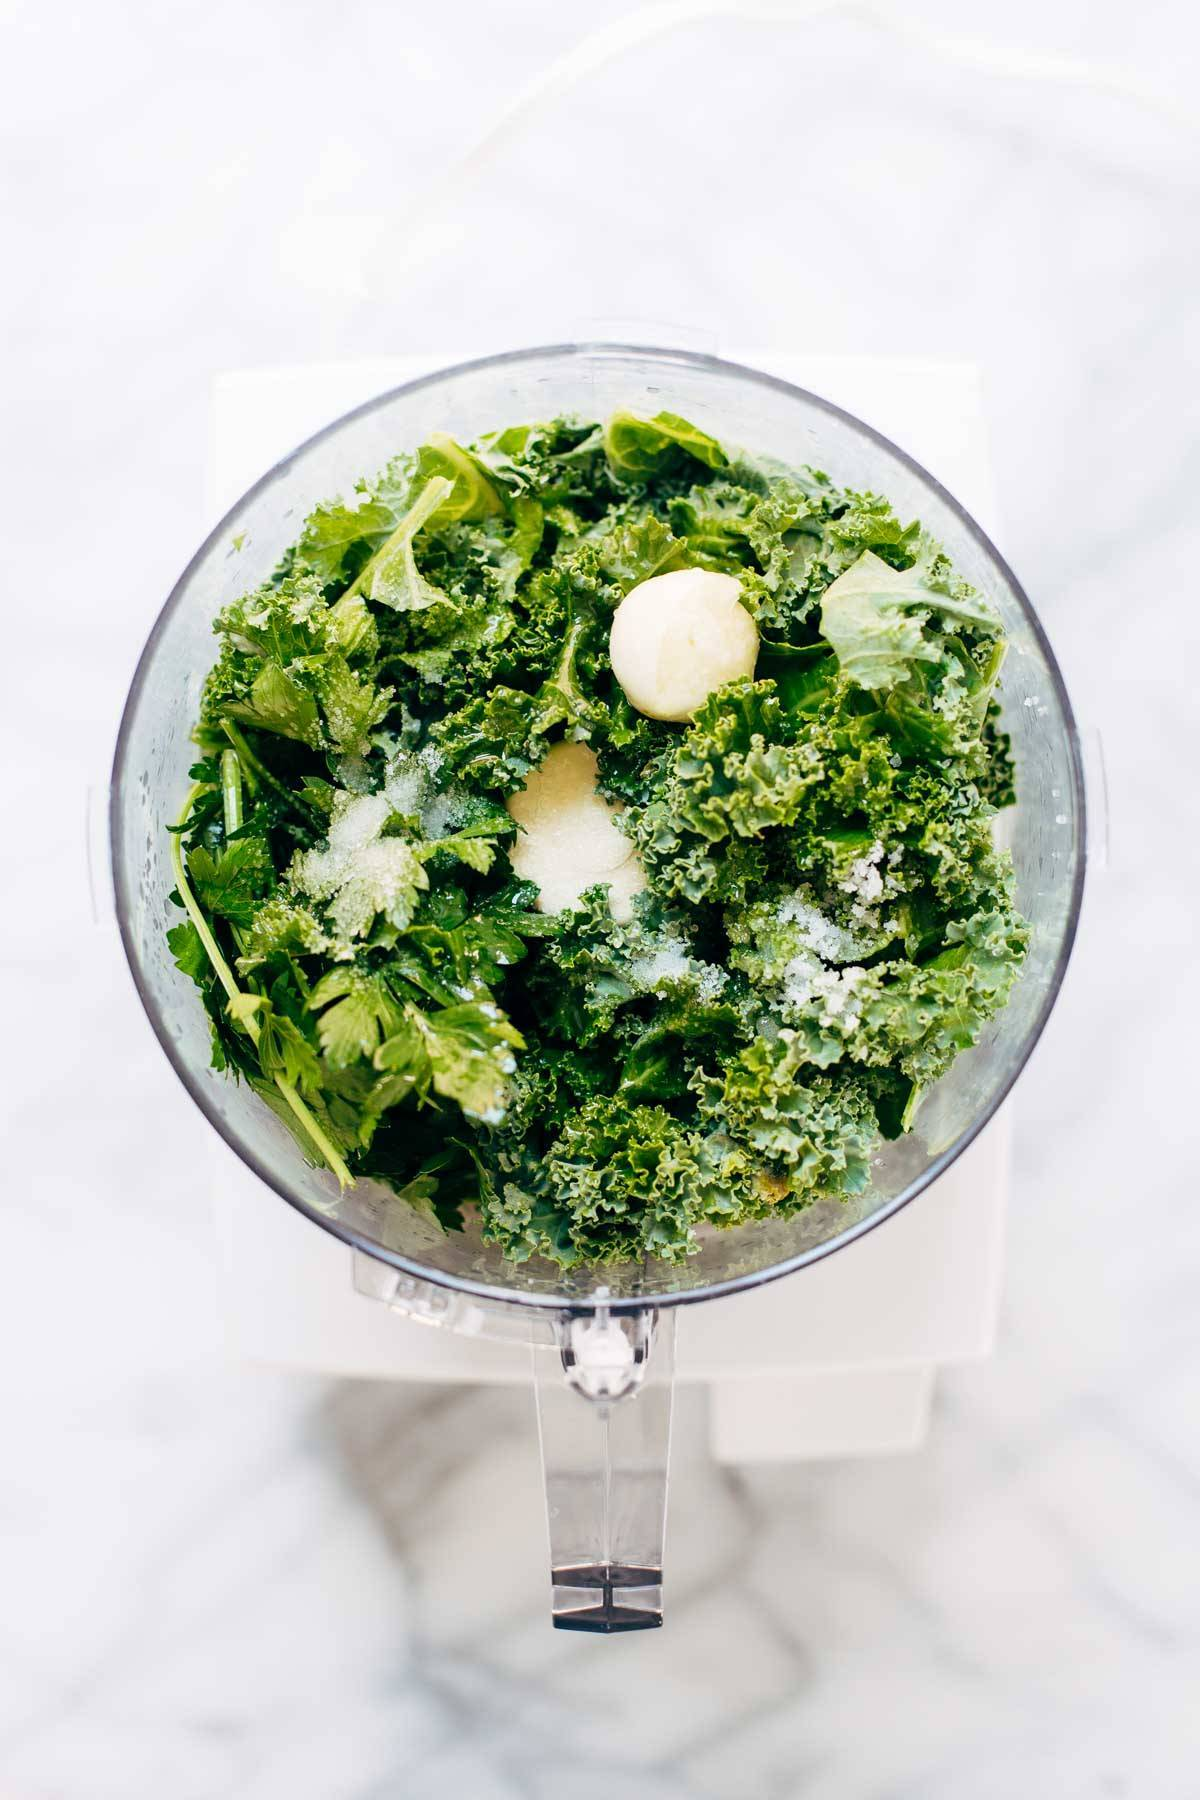 5 Minute Vegan Kale Pesto - made with almonds, olive oil, kale, garlic, salt, and lemon juice. Less than 150 calories per serving! | pinchofyum.com